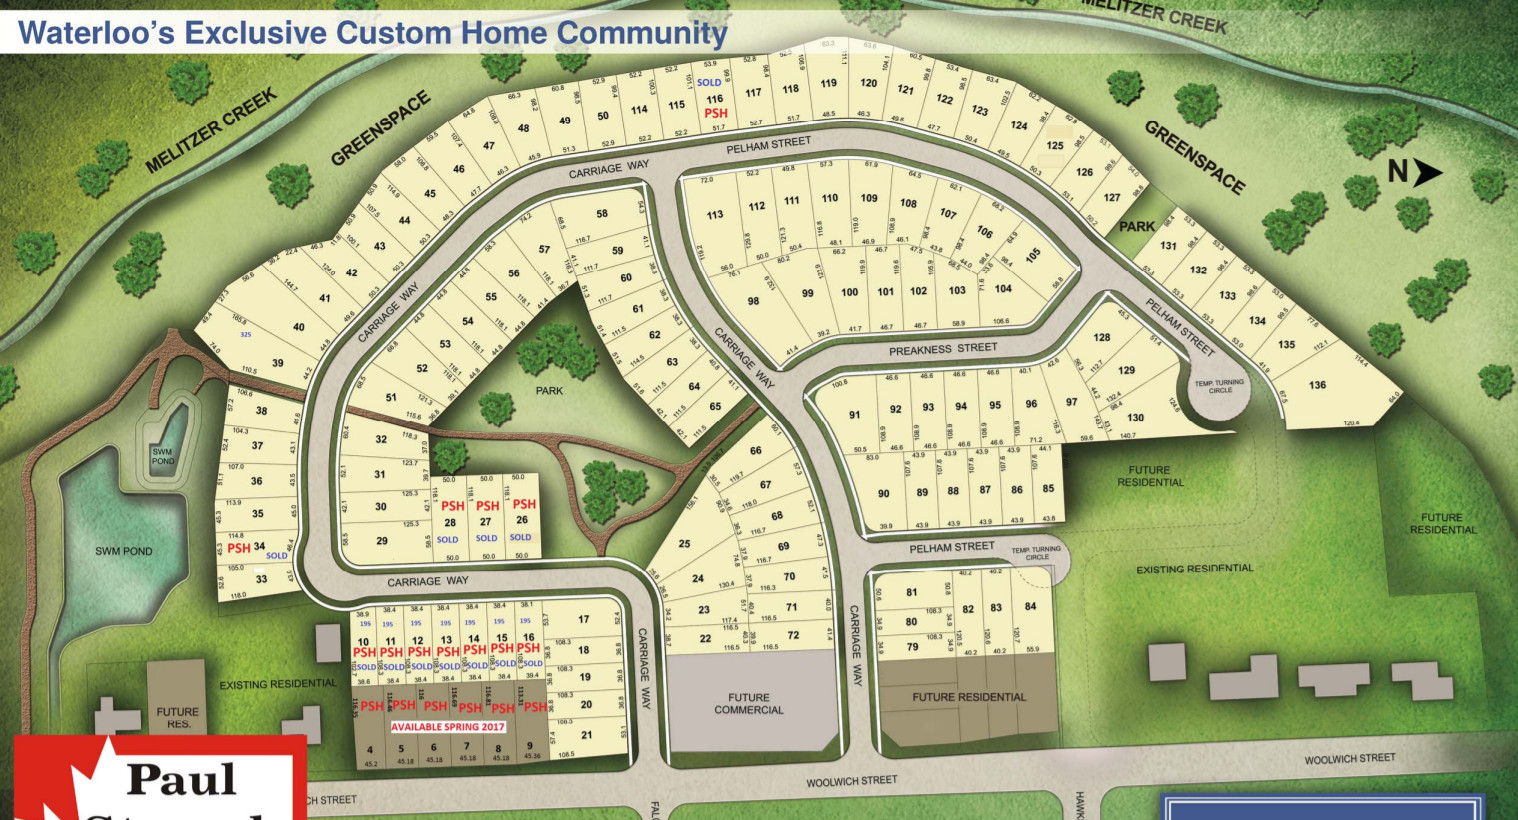 Site plan for Woolwich Estates in Waterloo, Ontario